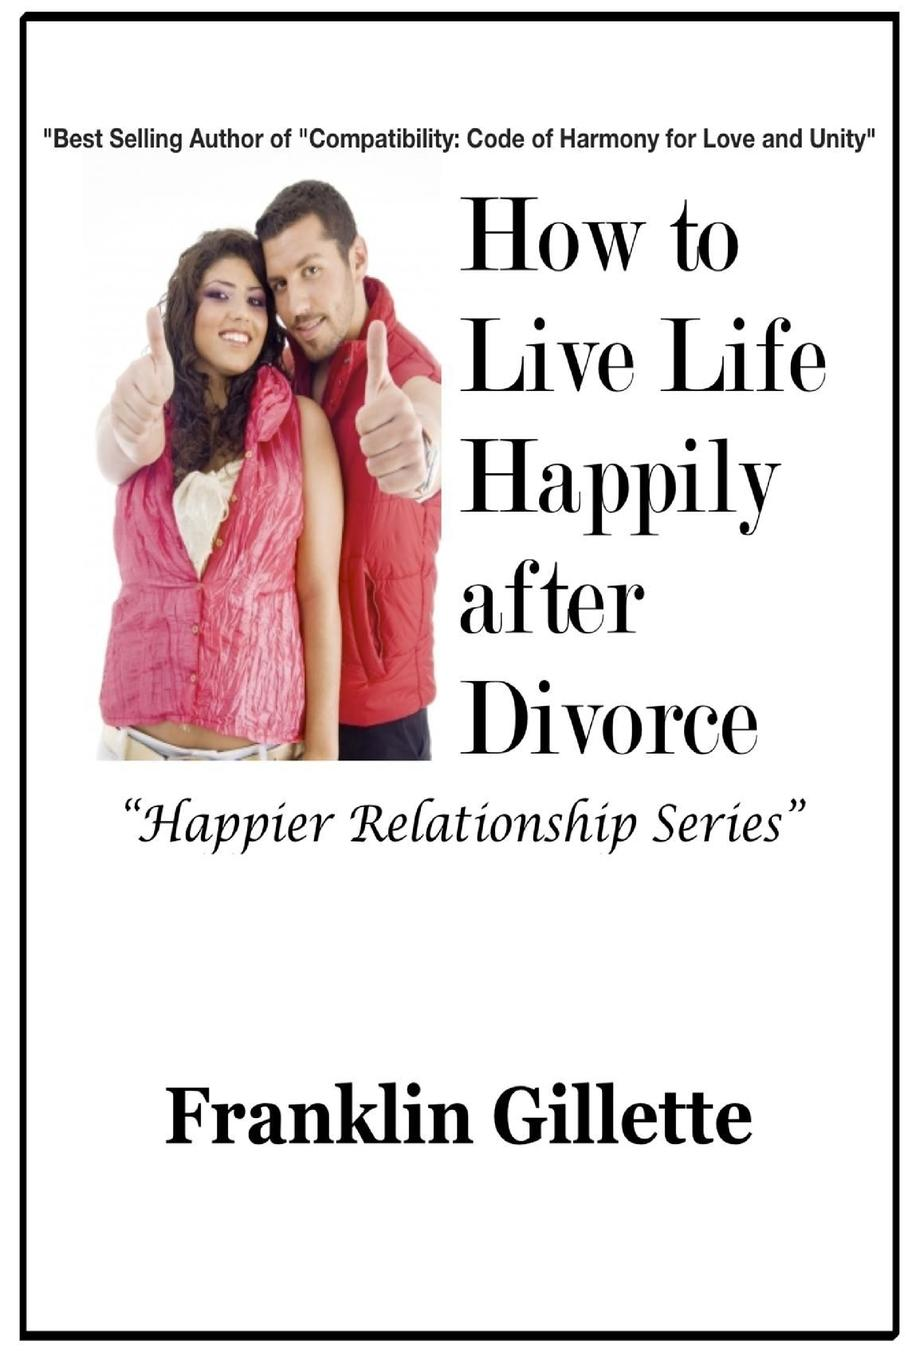 Franklin Gillette How to Live Life Happily after Divorce over to you